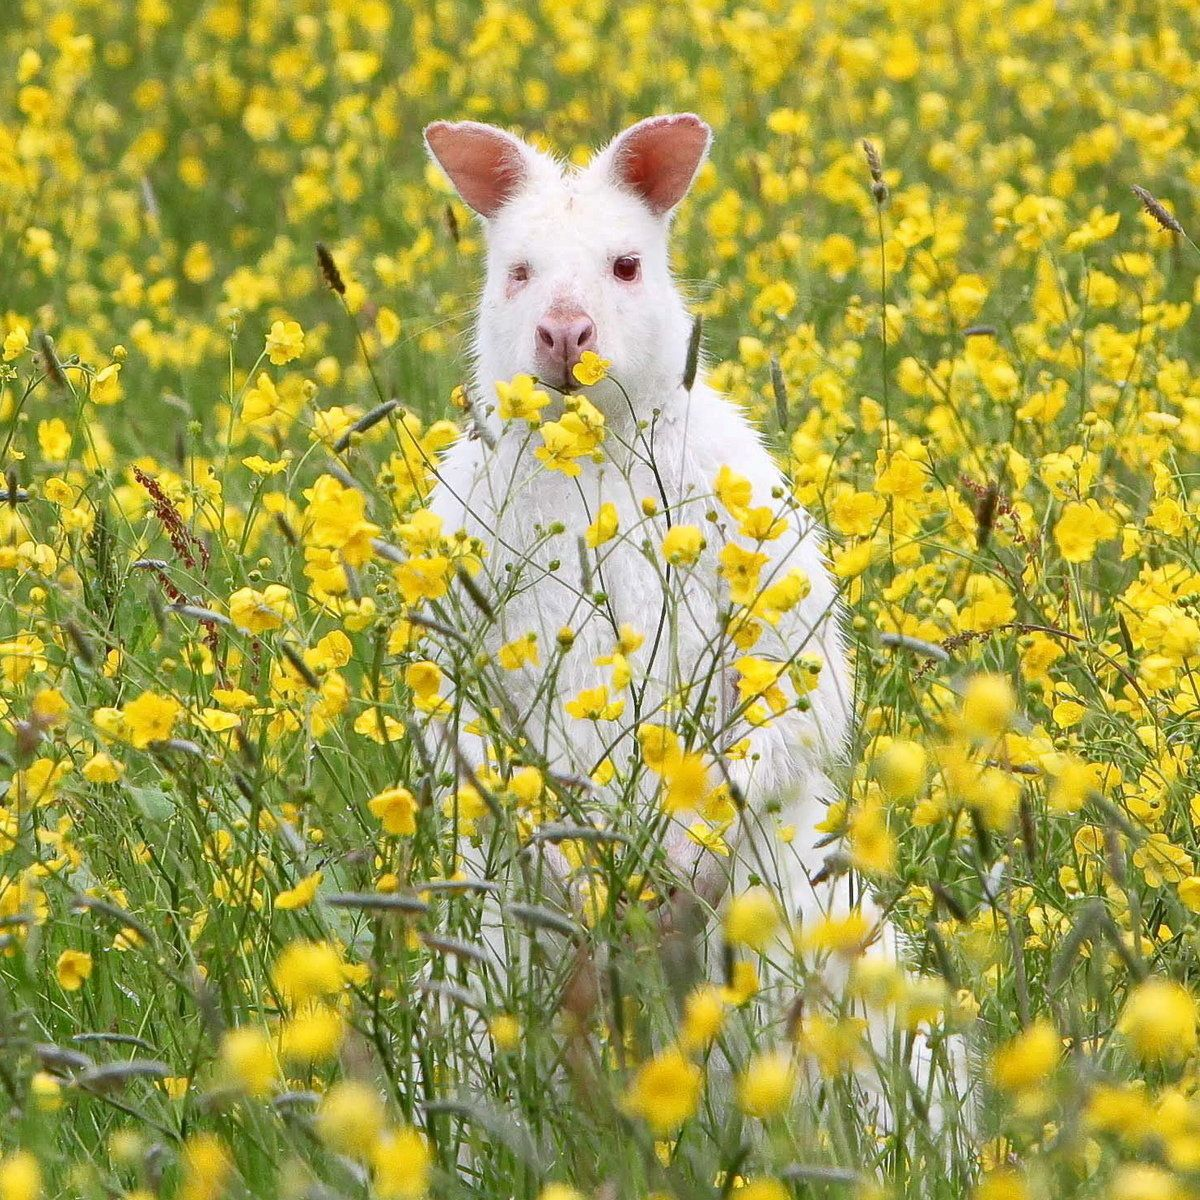 This rare albino wallaby was recently seen hopping around the British countryside.